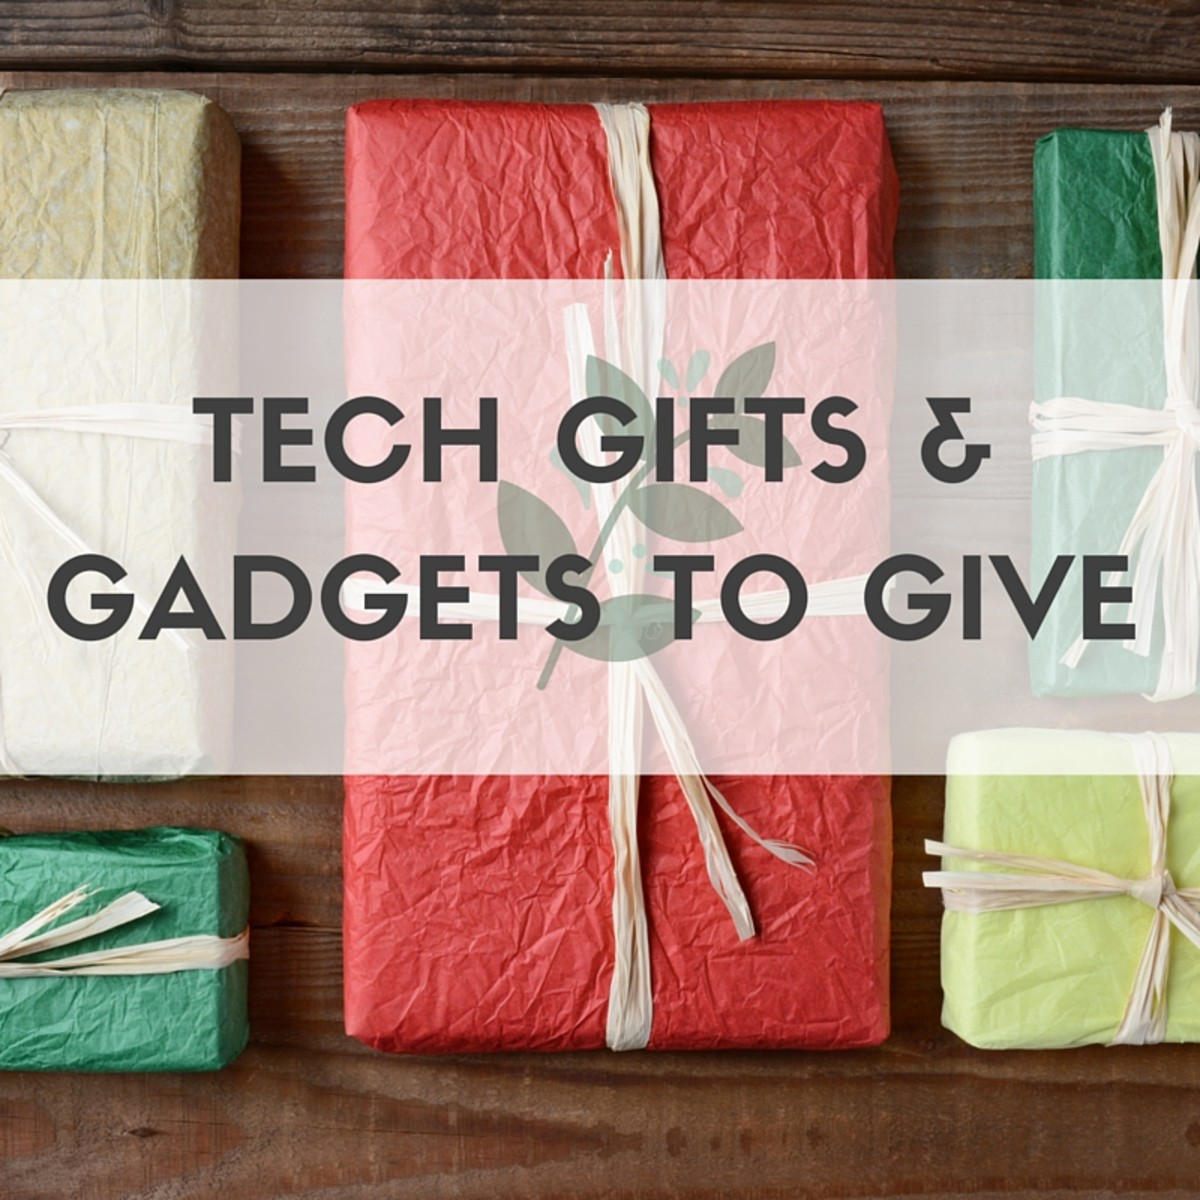 TECH GIFTS & GADGETS TO GIVE